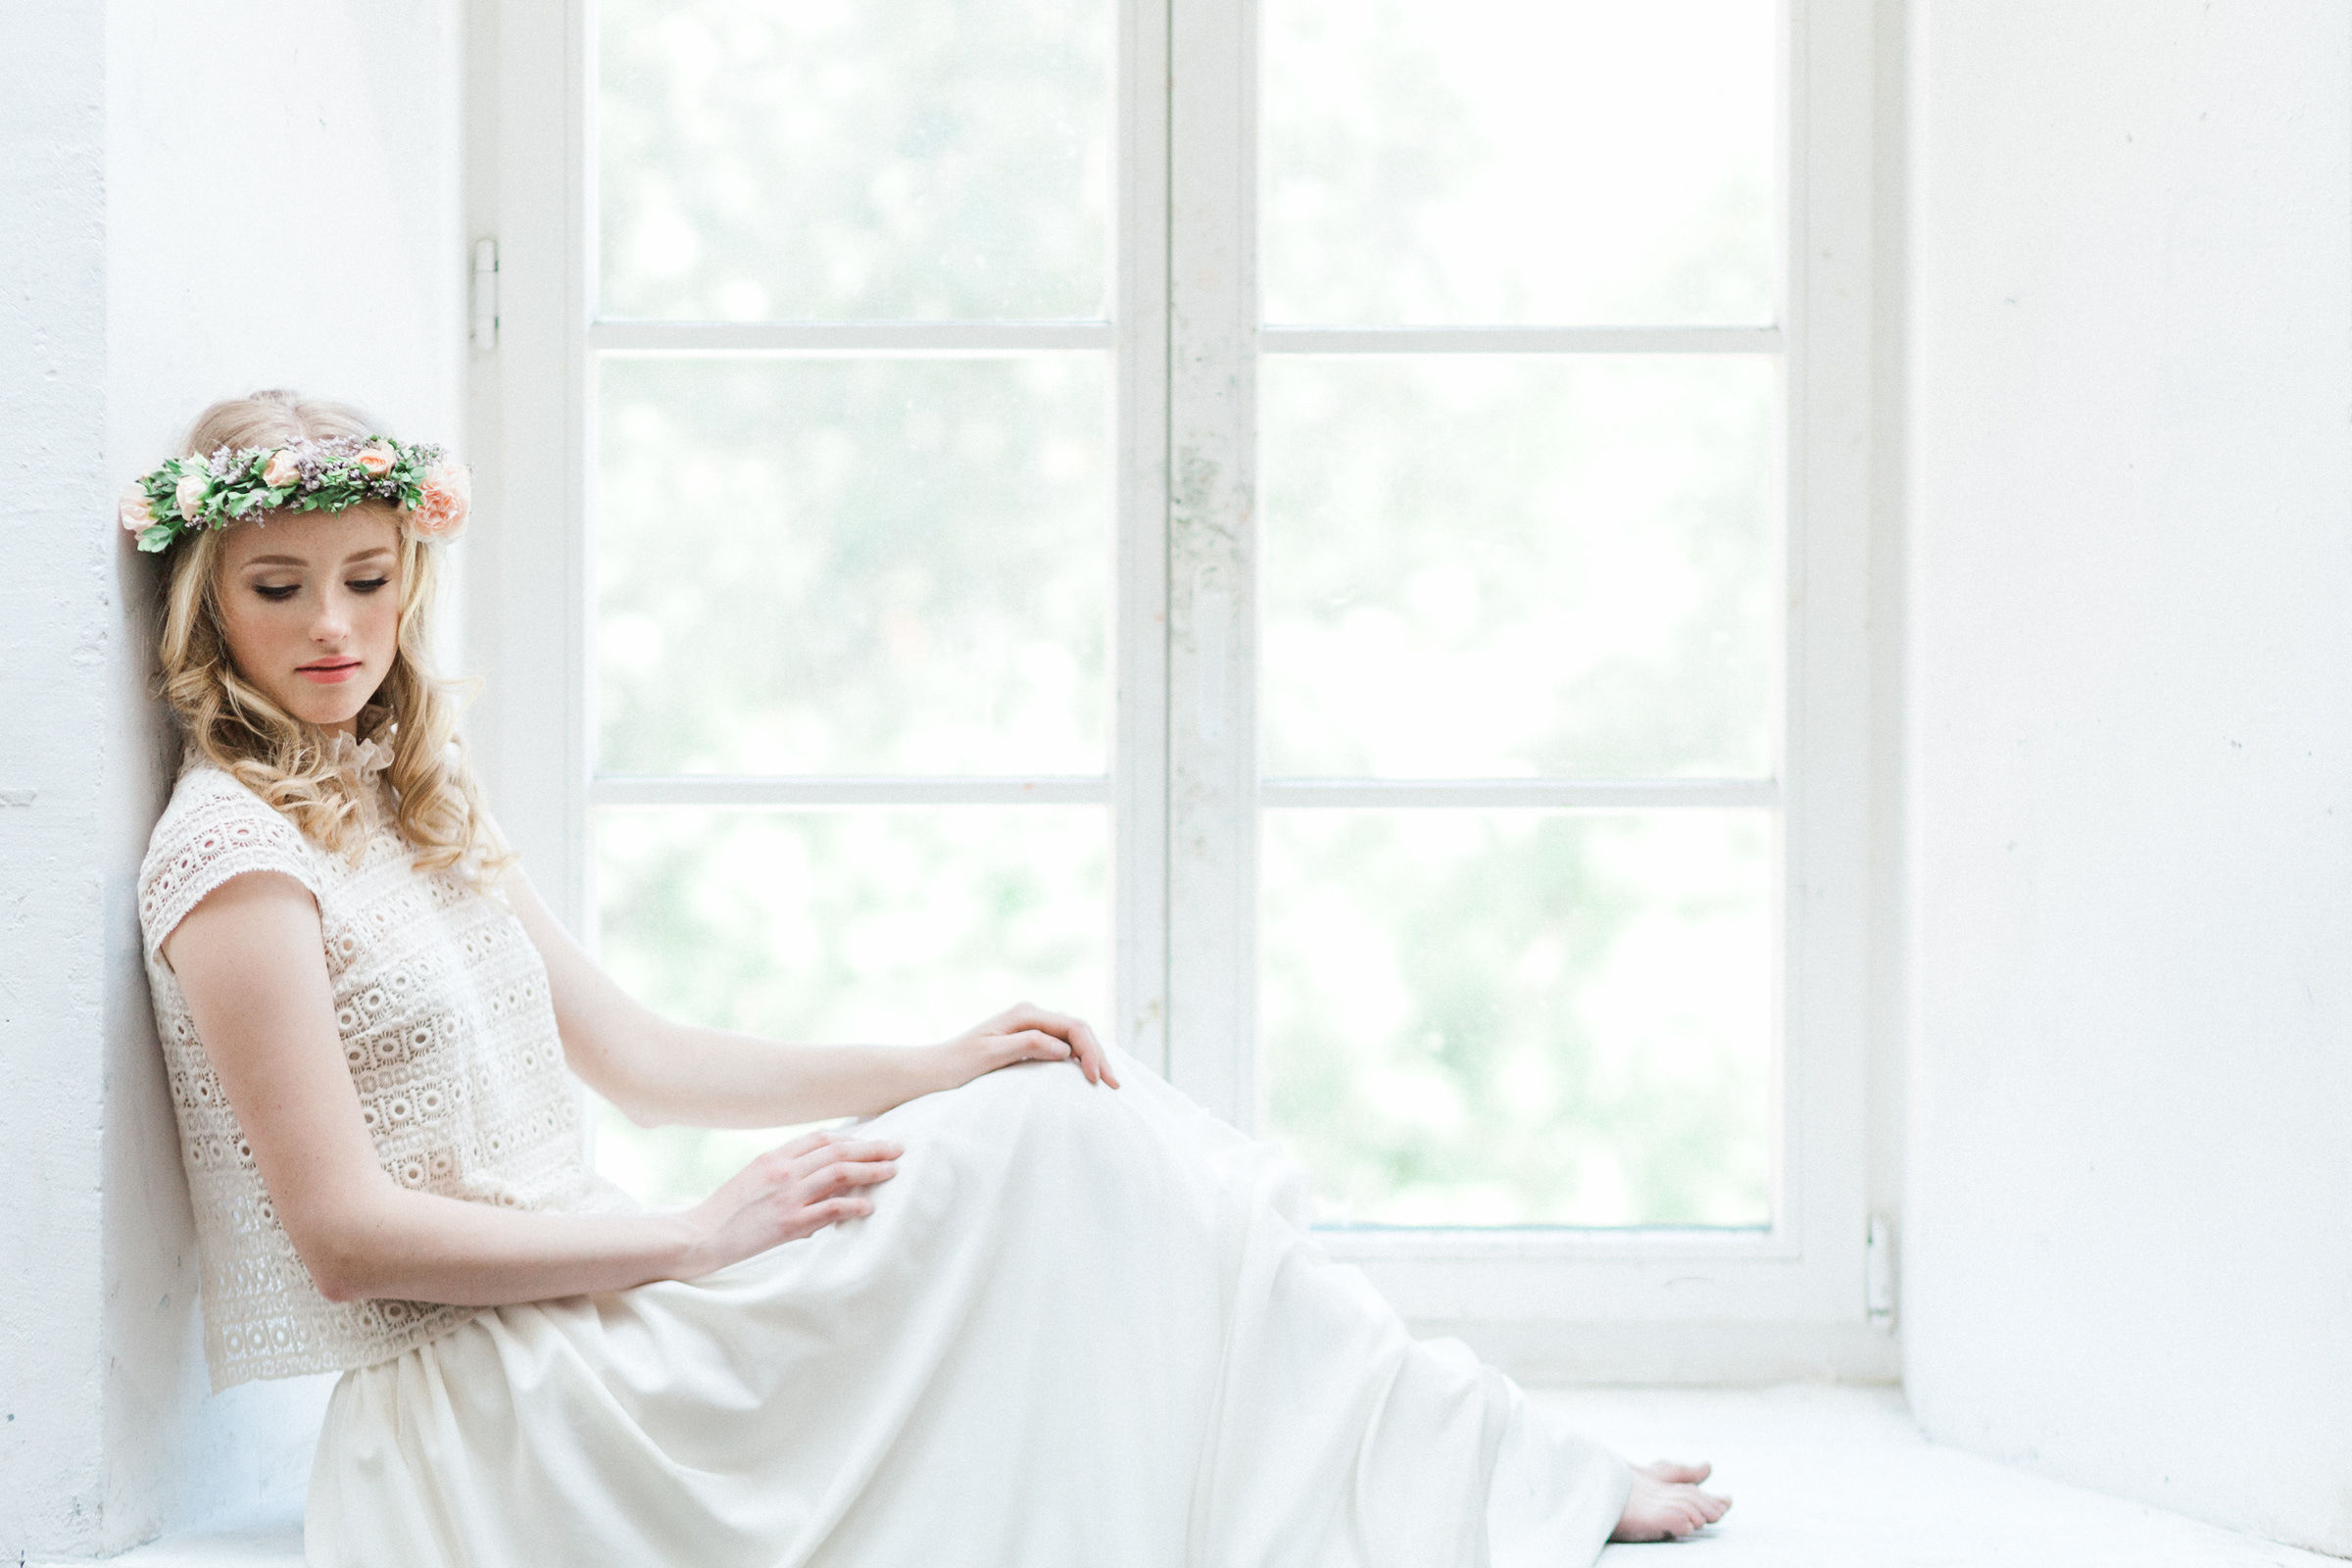 Bride wearing floral crown of pink roses and grape hyacinth - photographed by Jurgita Lukos - Luthuania